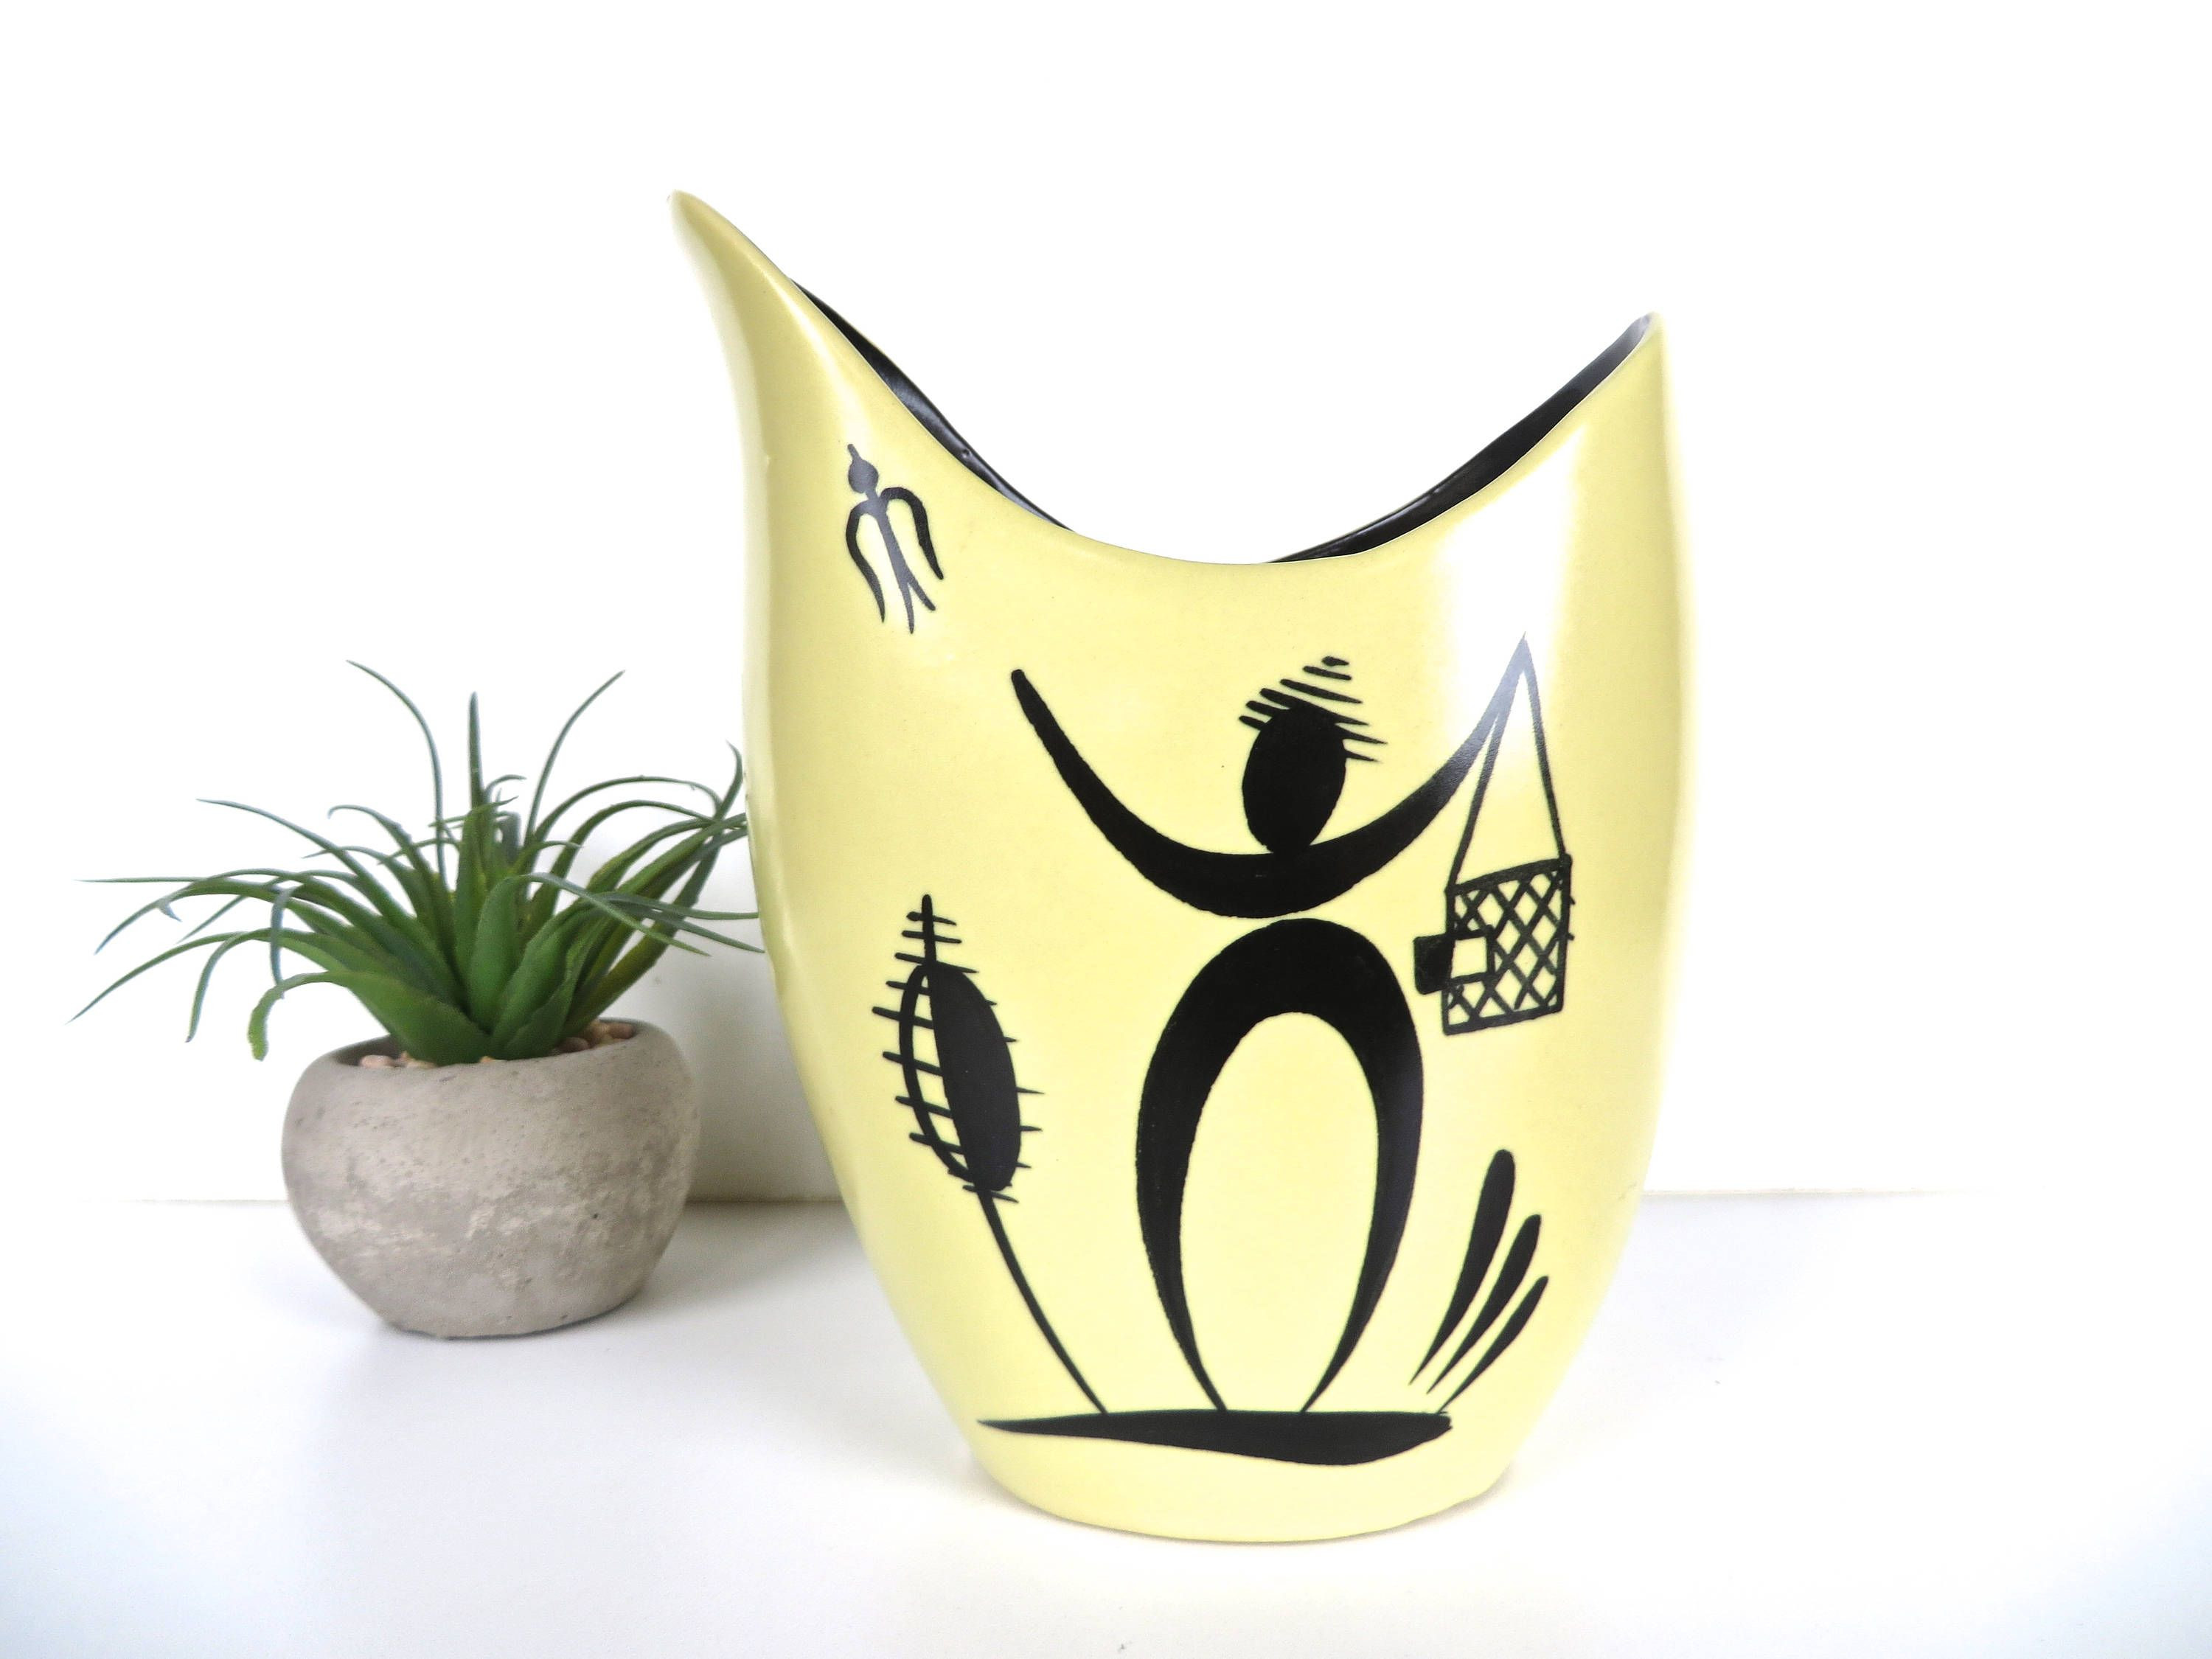 Pottery Craft Usa Vase Of Petrus Regout Maastrich Royal Dutch Art Vase From Holland Wim In Petrus Regout Maastrich Royal Dutch Art Vase From Holland Wim Visser Sphinx Ceramics Holland Yellow and Black Sculptural Vase